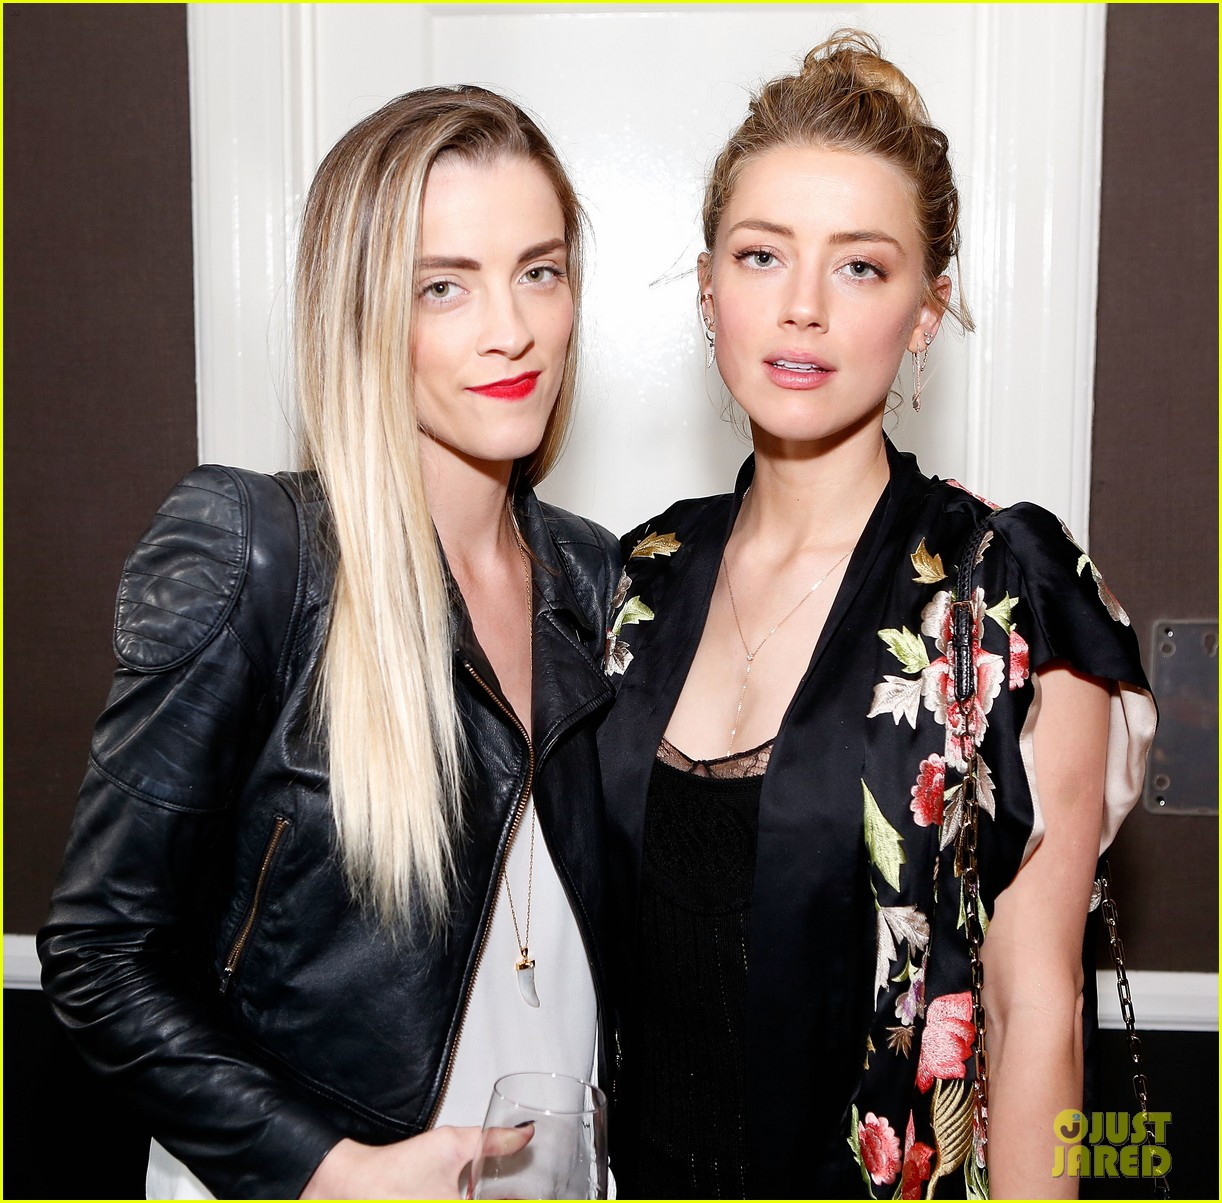 James Franco Girlfriend History Minimalist amber heard joins james & dave franco at their brother tom's art